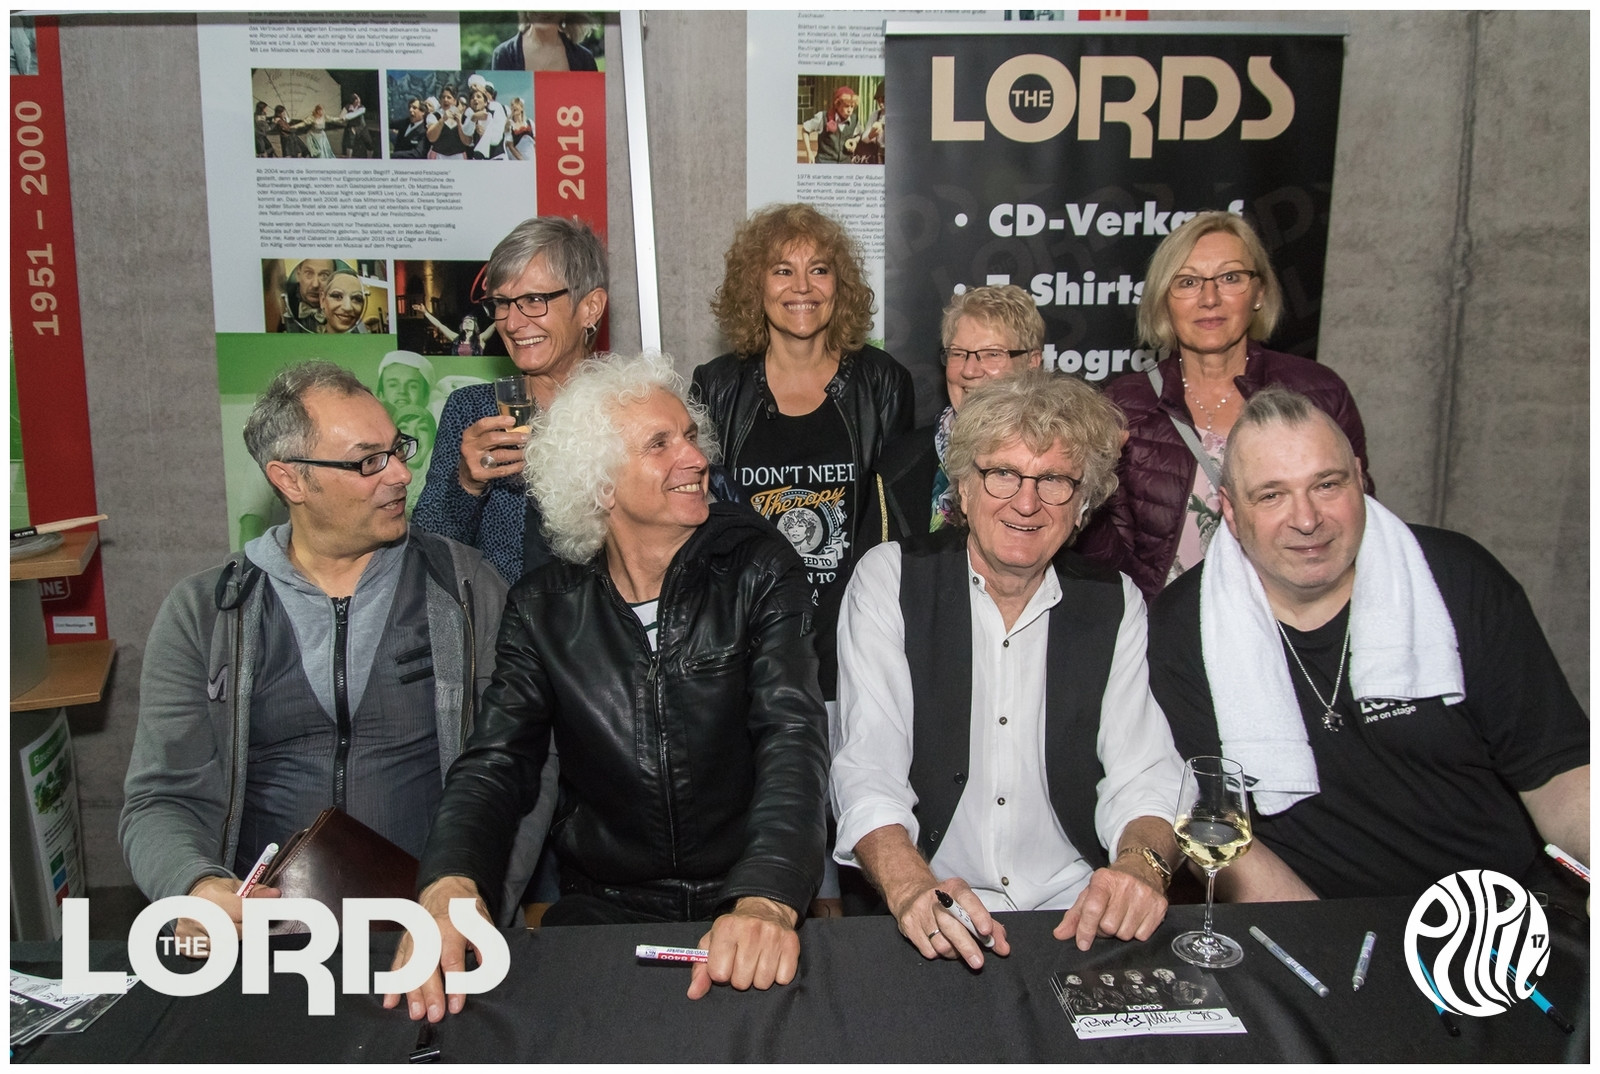 23.08.2019-LORDS Reutlingen-558 (Kopie)